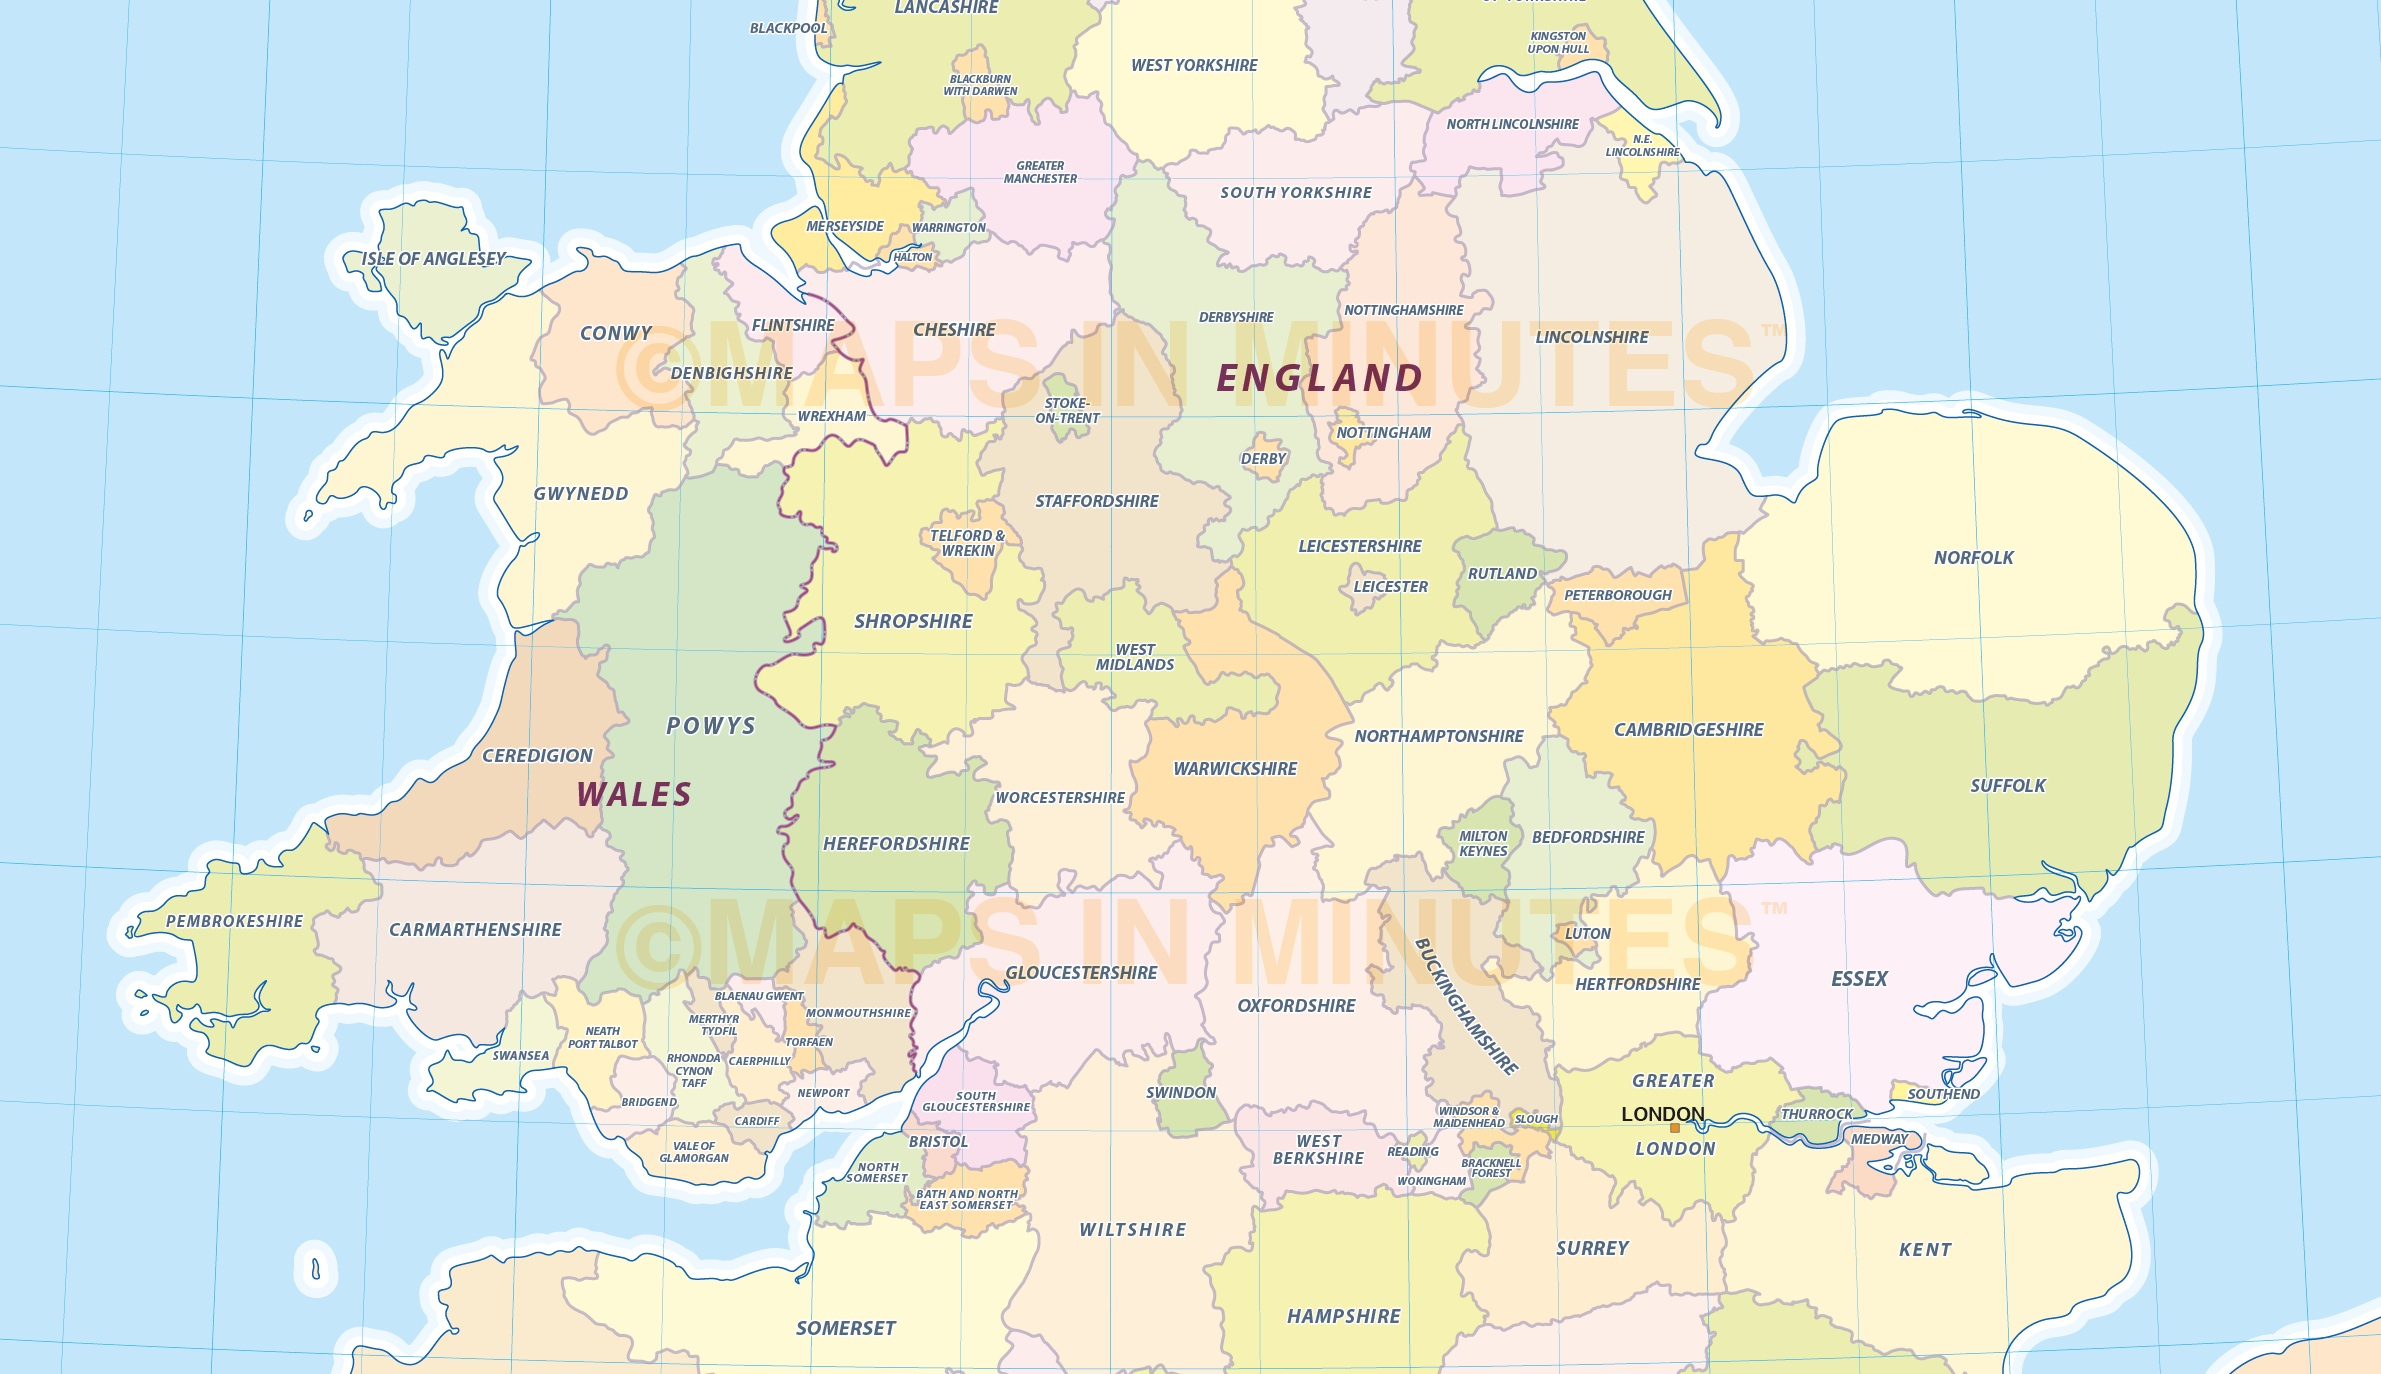 Digital Uk Simple County Administrative Map 5 000 000 Scale